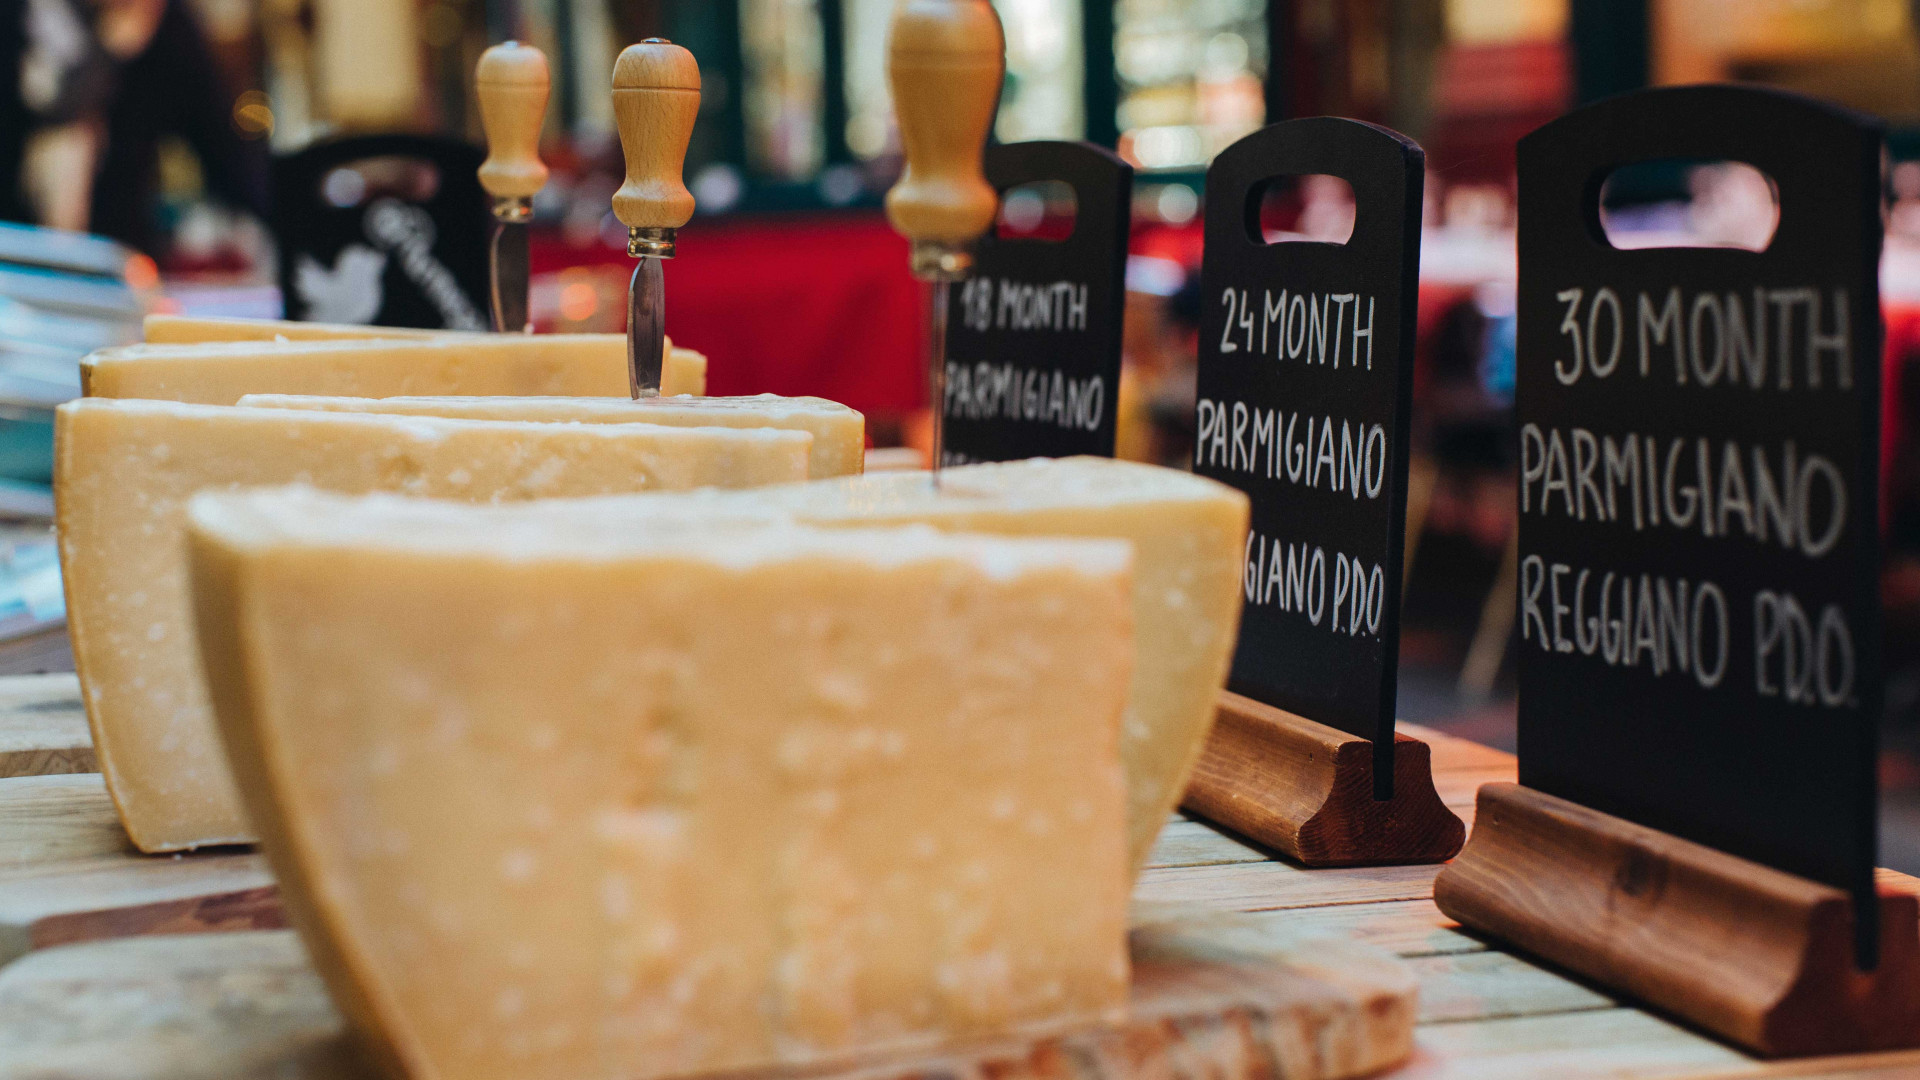 Different maturations of Parmigiano